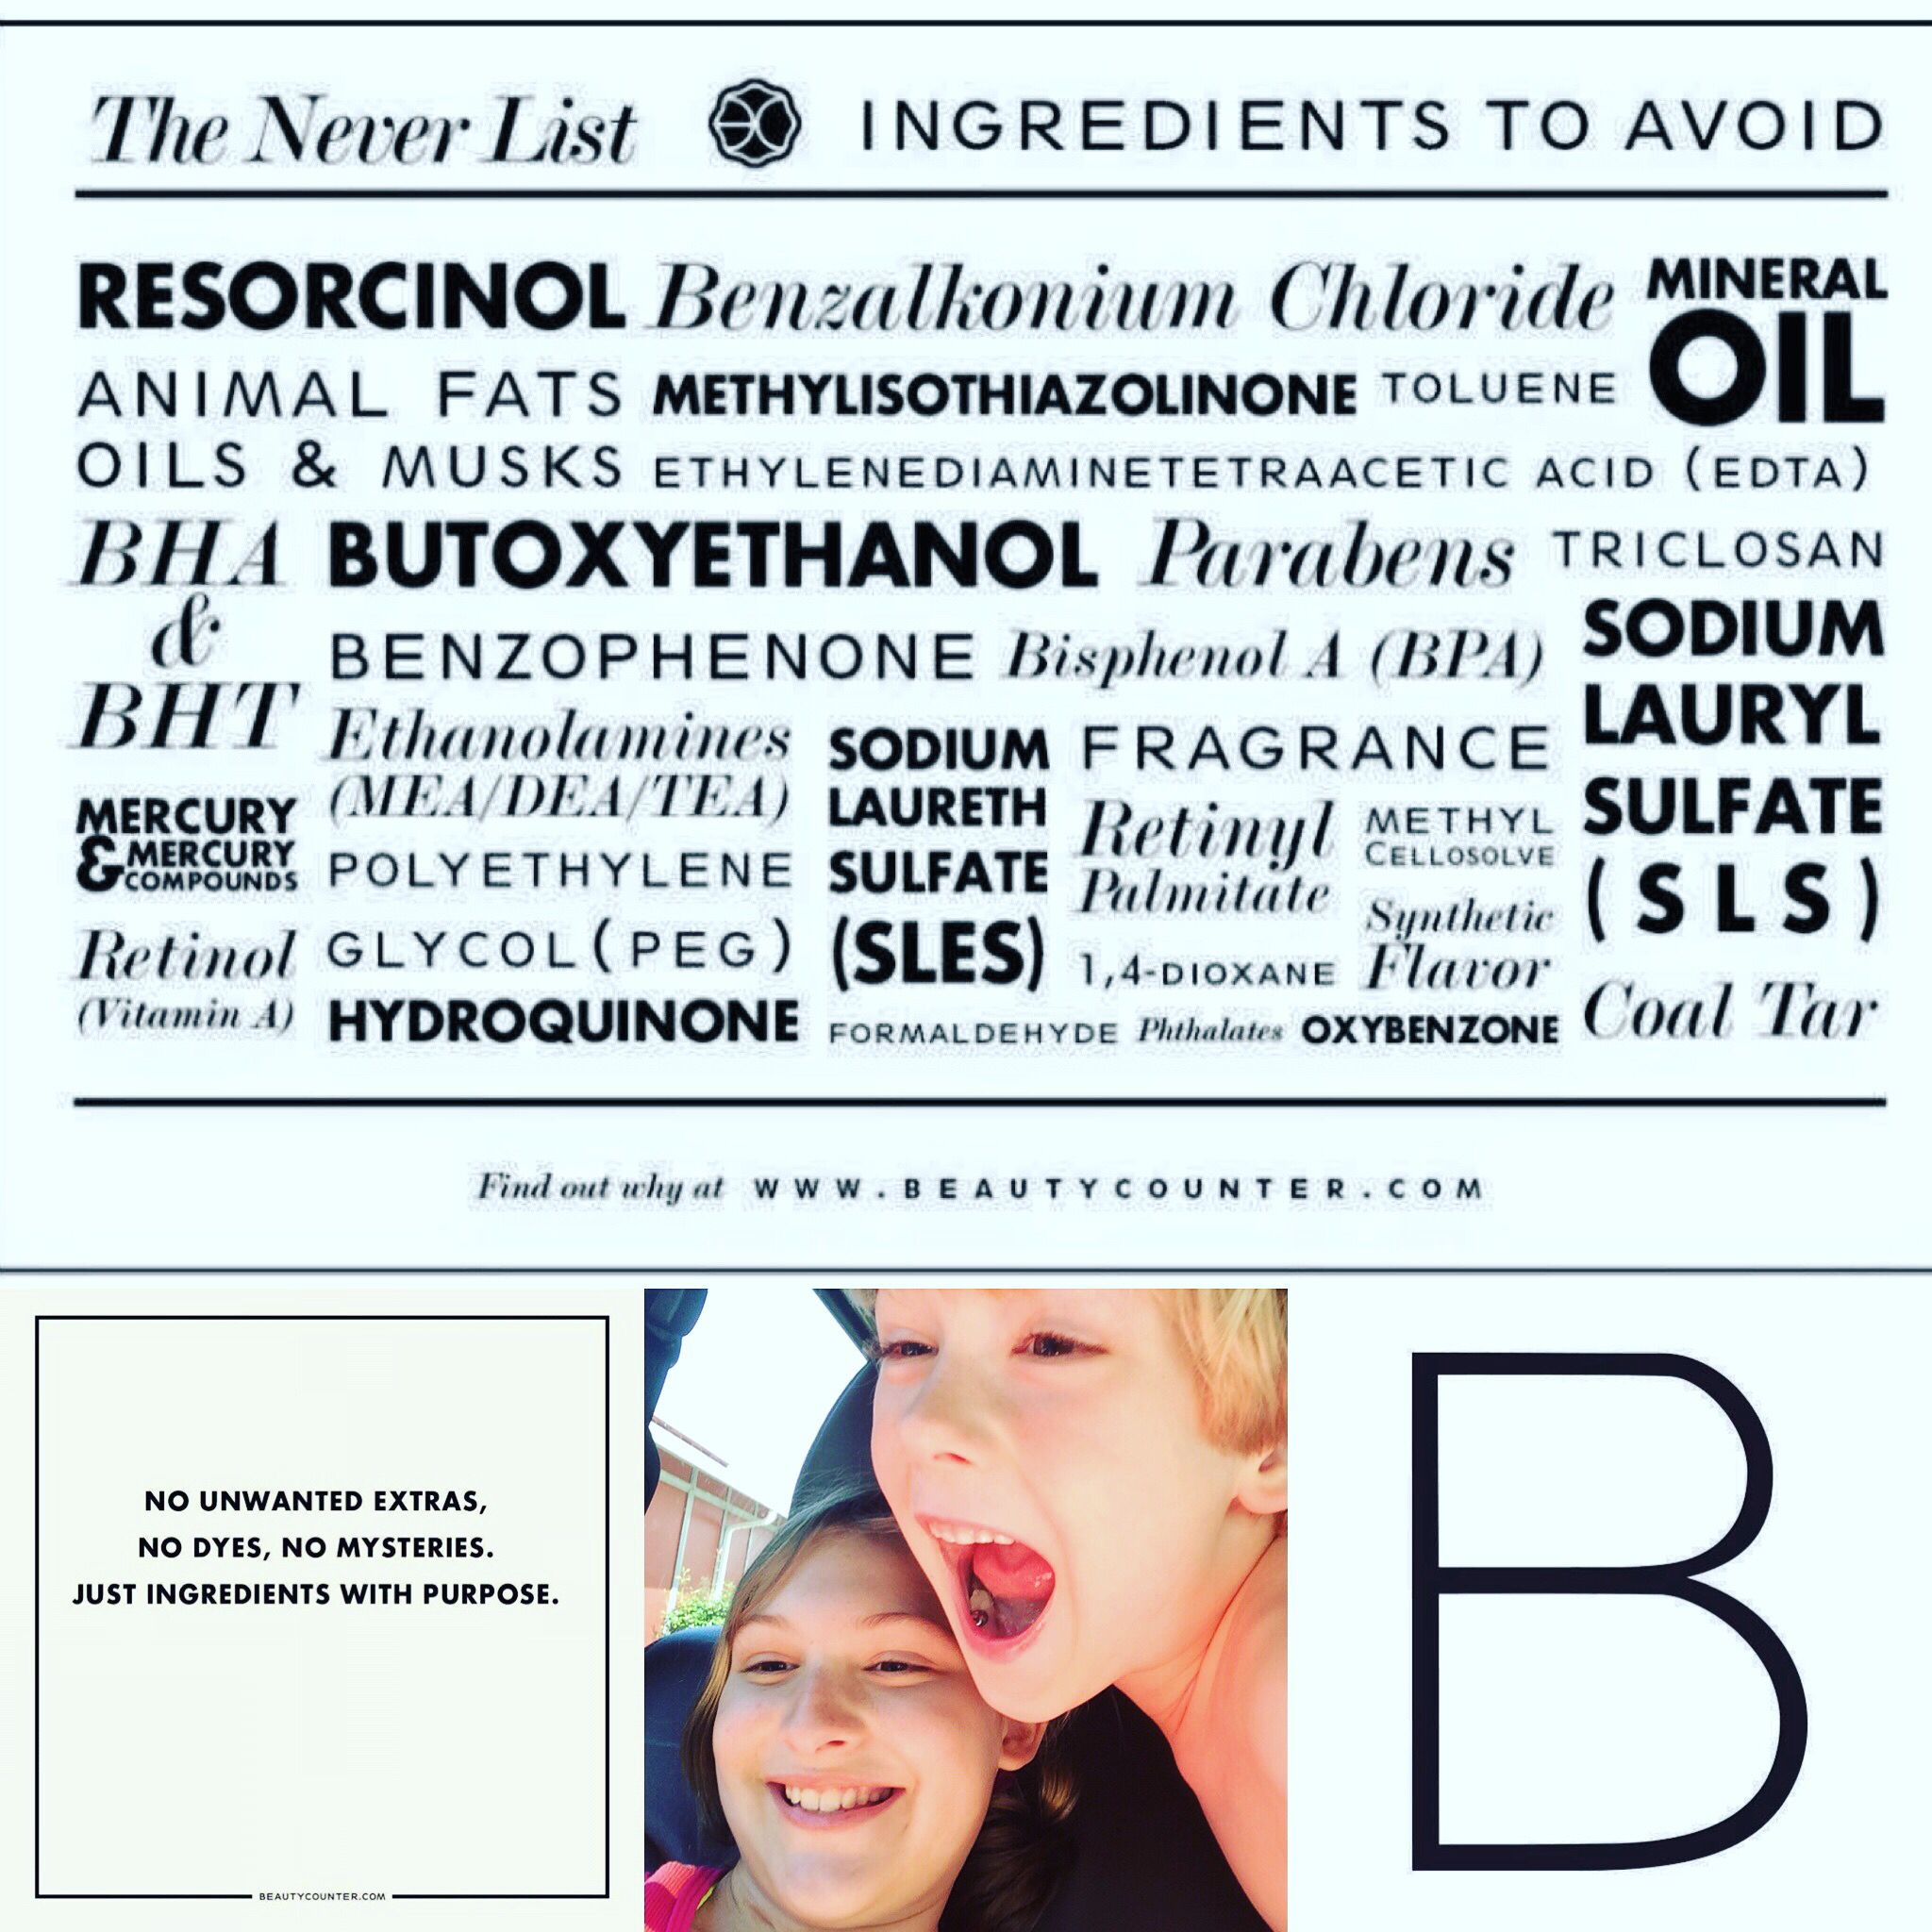 My Beautycounter WHY? These two crazy kids right here! Their health matters & so does yours! www.beautycounter.com/sarahcotten